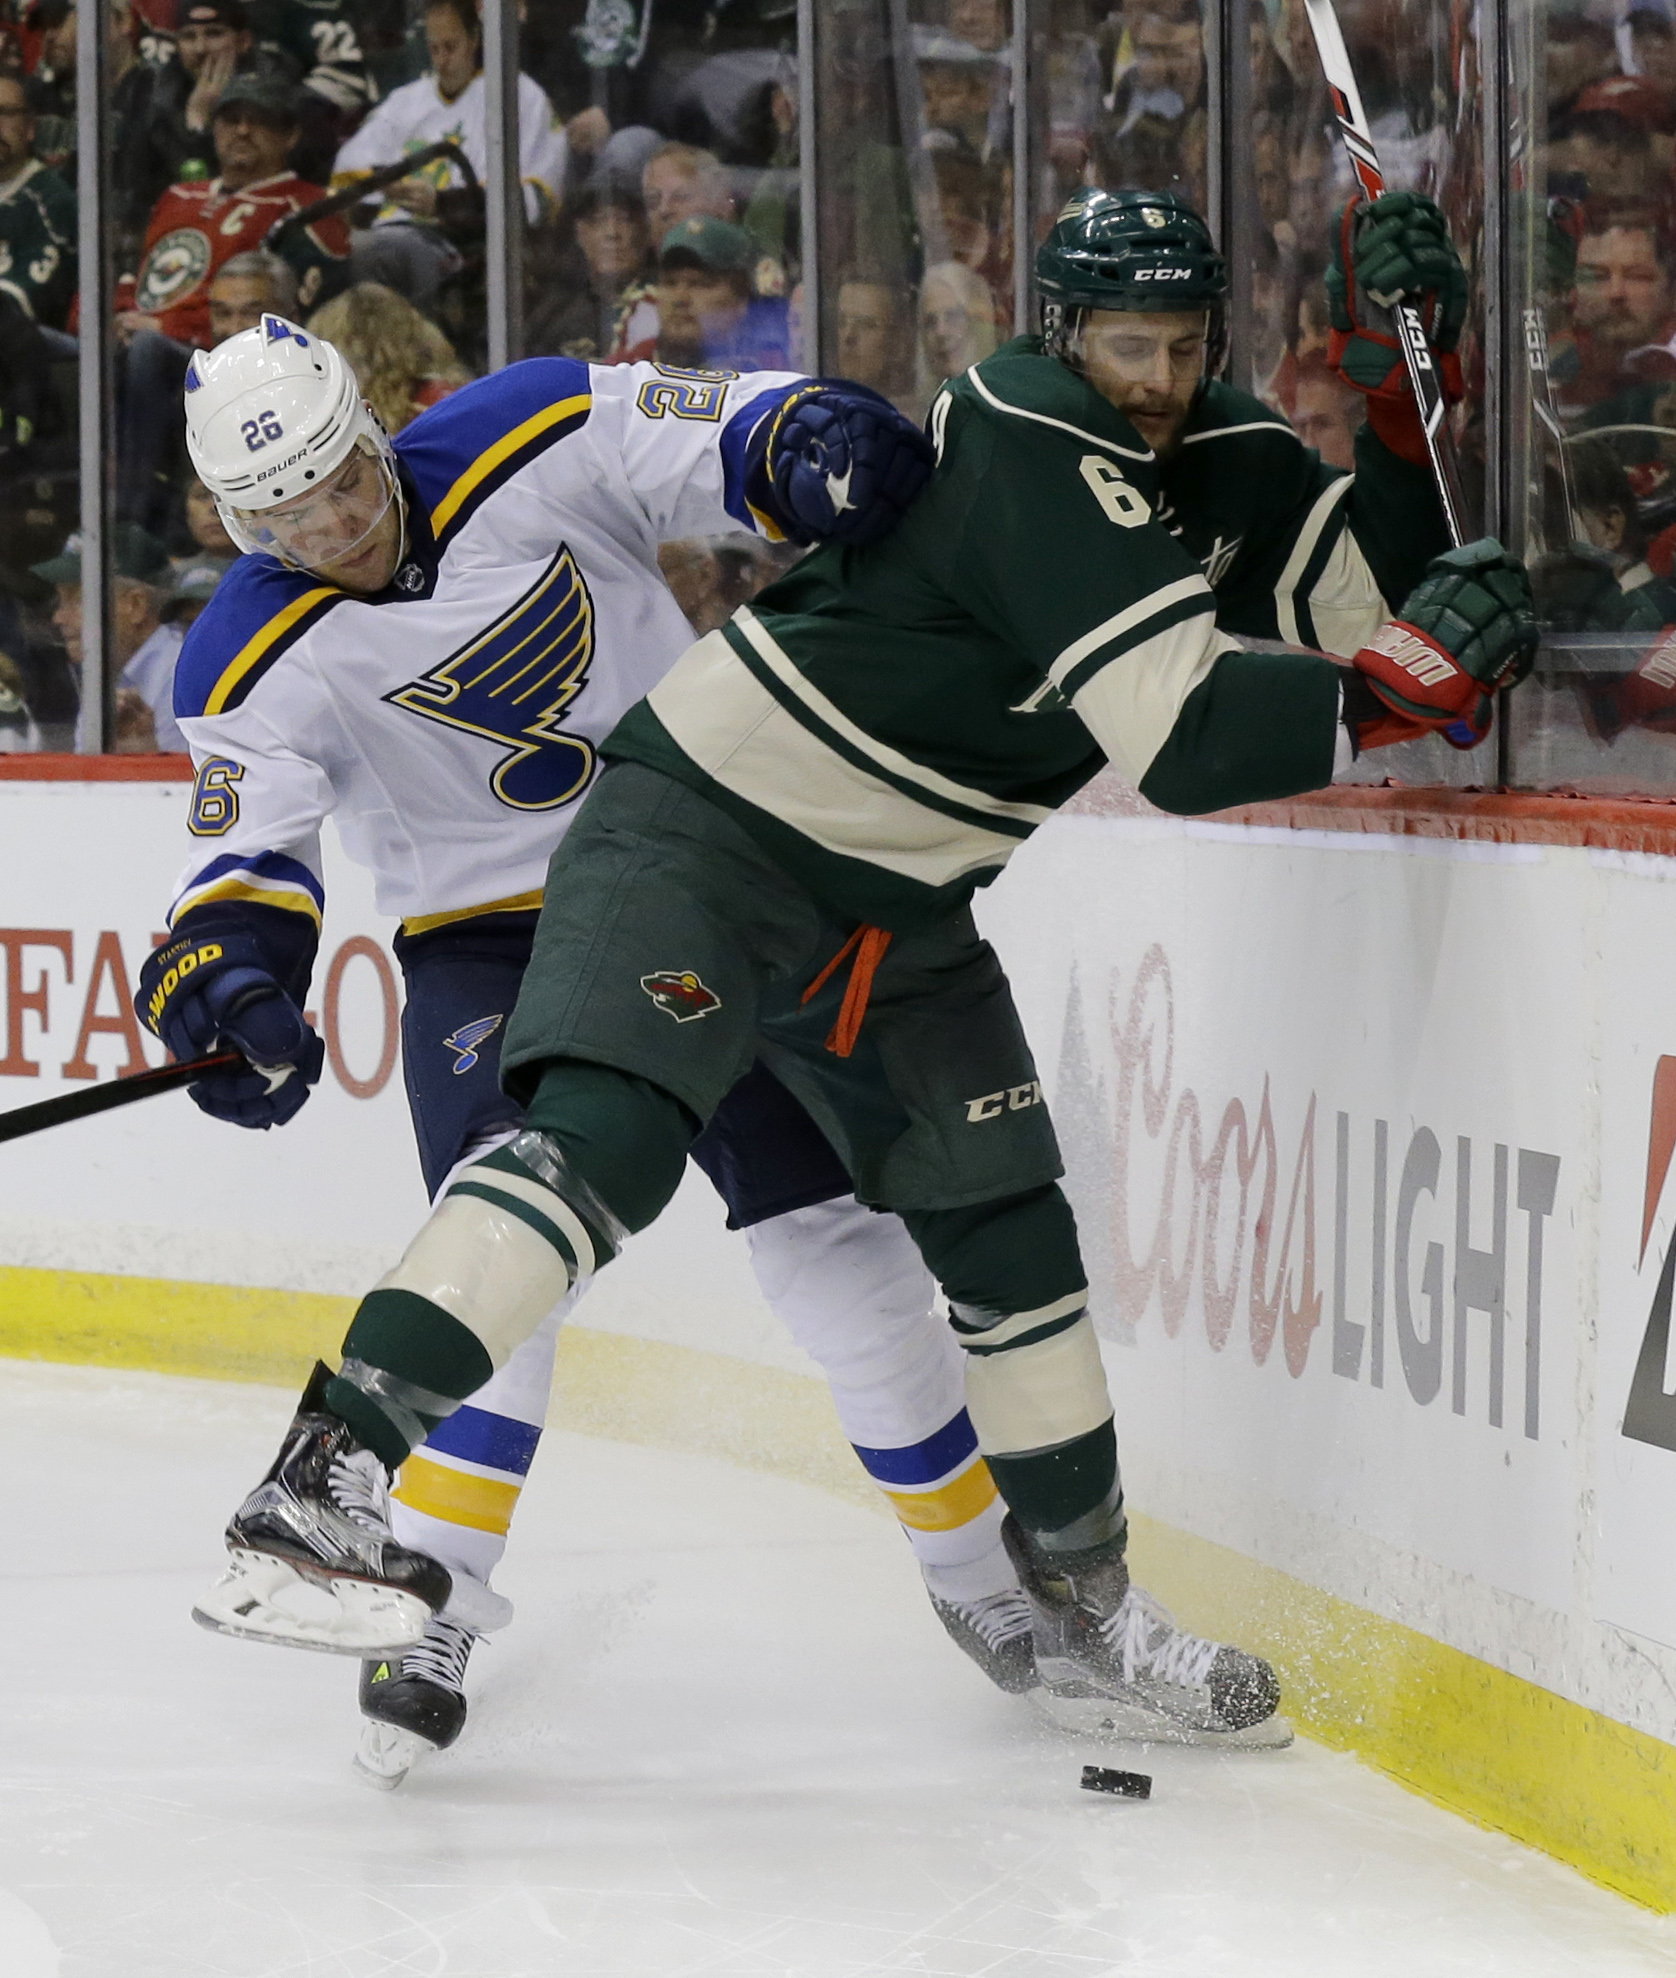 Minnesota Wild defenseman Marco Scandella (6) and St. Louis Blues center Paul Stastny (26) battle for the puck during the second period of Game 3 of an NHL hockey first-round playoff series game in St. Paul, Minn., Monday, April 20, 2015. (AP Photo/Ann He